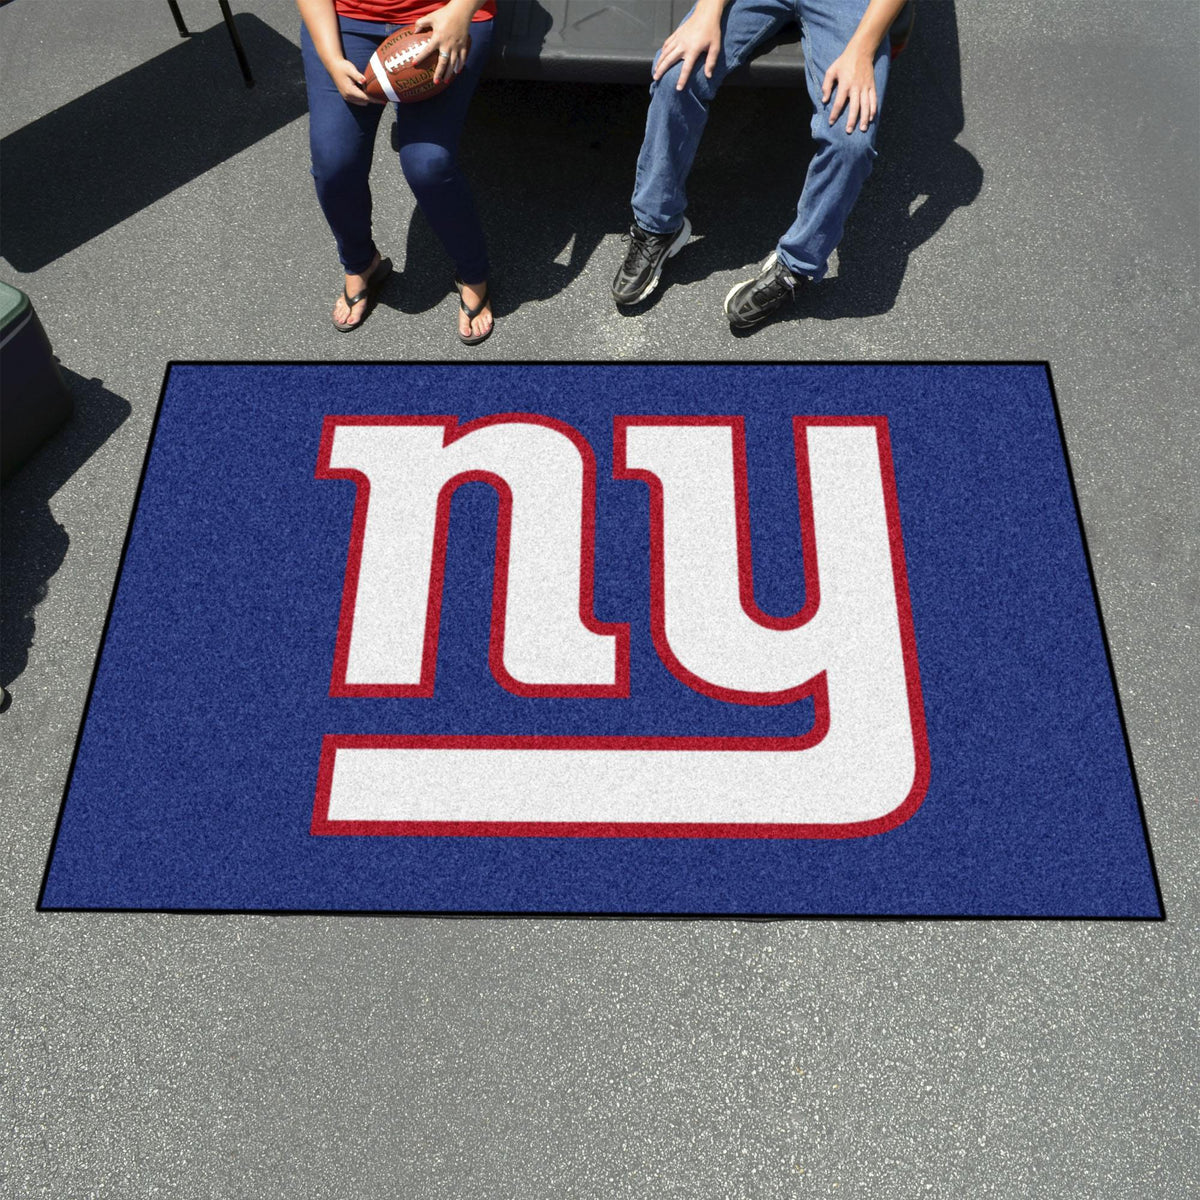 "NFL - Ulti-Mat, 59.5"" x 94.5"" NFL Mats, Rectangular Mats, Ulti-Mat, NFL, Home Fan Mats New York Giants 2"